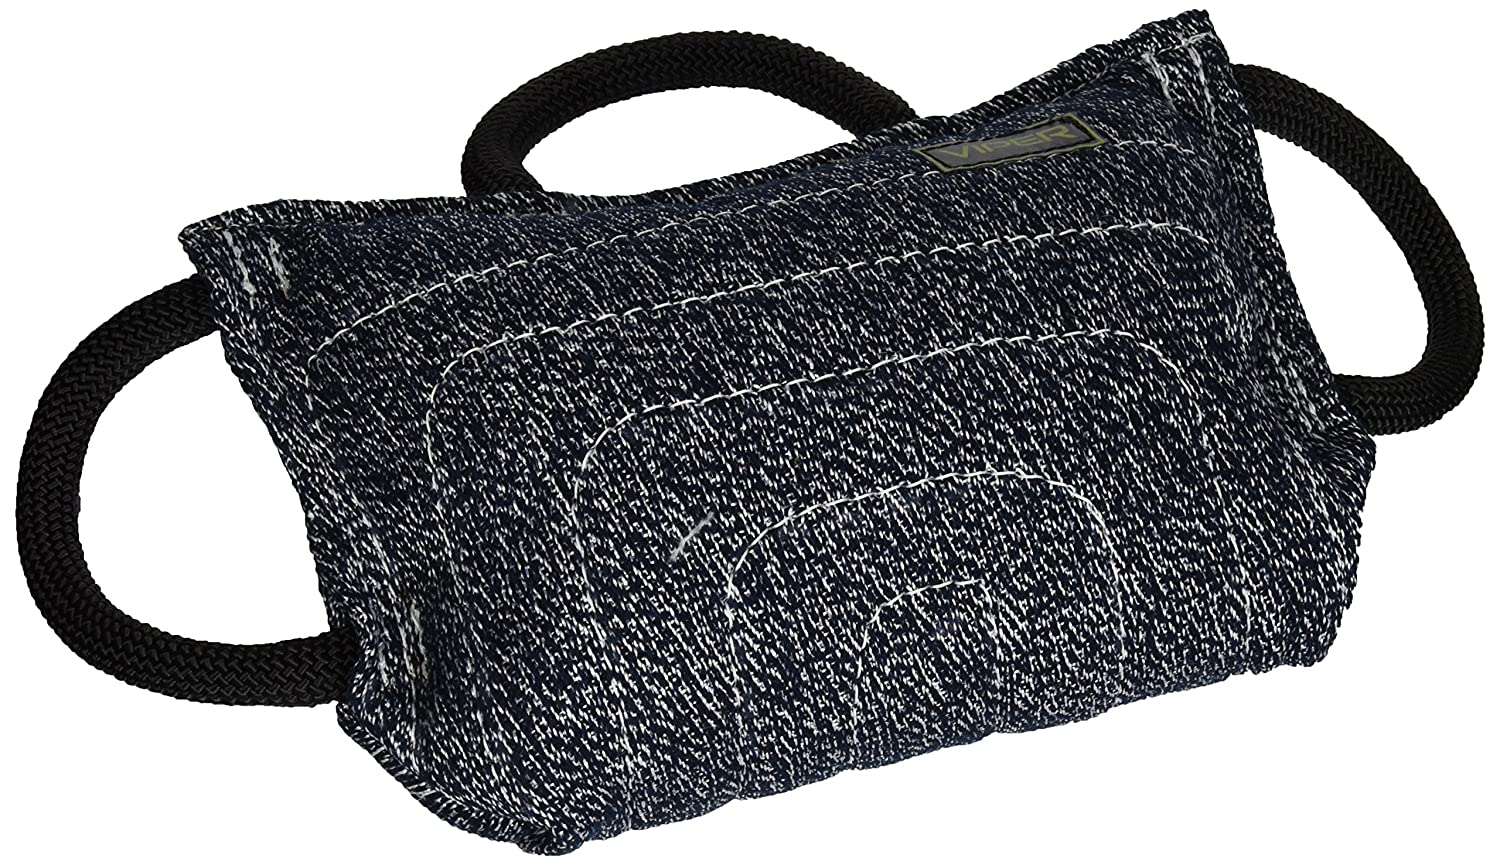 Viper Jute or Synthetic Linen Classic Bite Pillow Tug Toy Reward for Adult Dogs and Puppies